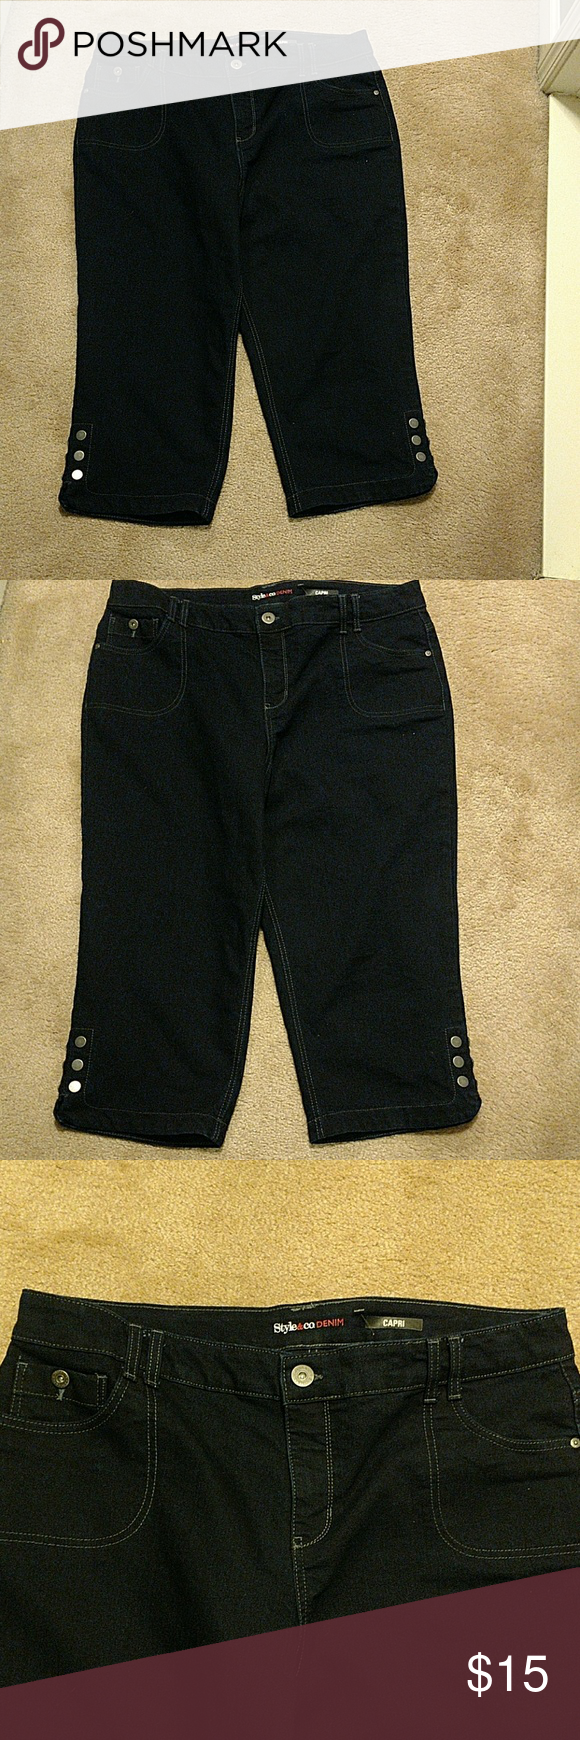 STYLE & CO DENIM CAPRI'S Style and Co Denim Capri's. These Capri's has 3 pockets in the front and 2 pockets in the back. The legs has  6 nickel brushed buttons and a split on each leg.  NEVER WORN Style & Co Jeans Ankle & Cropped